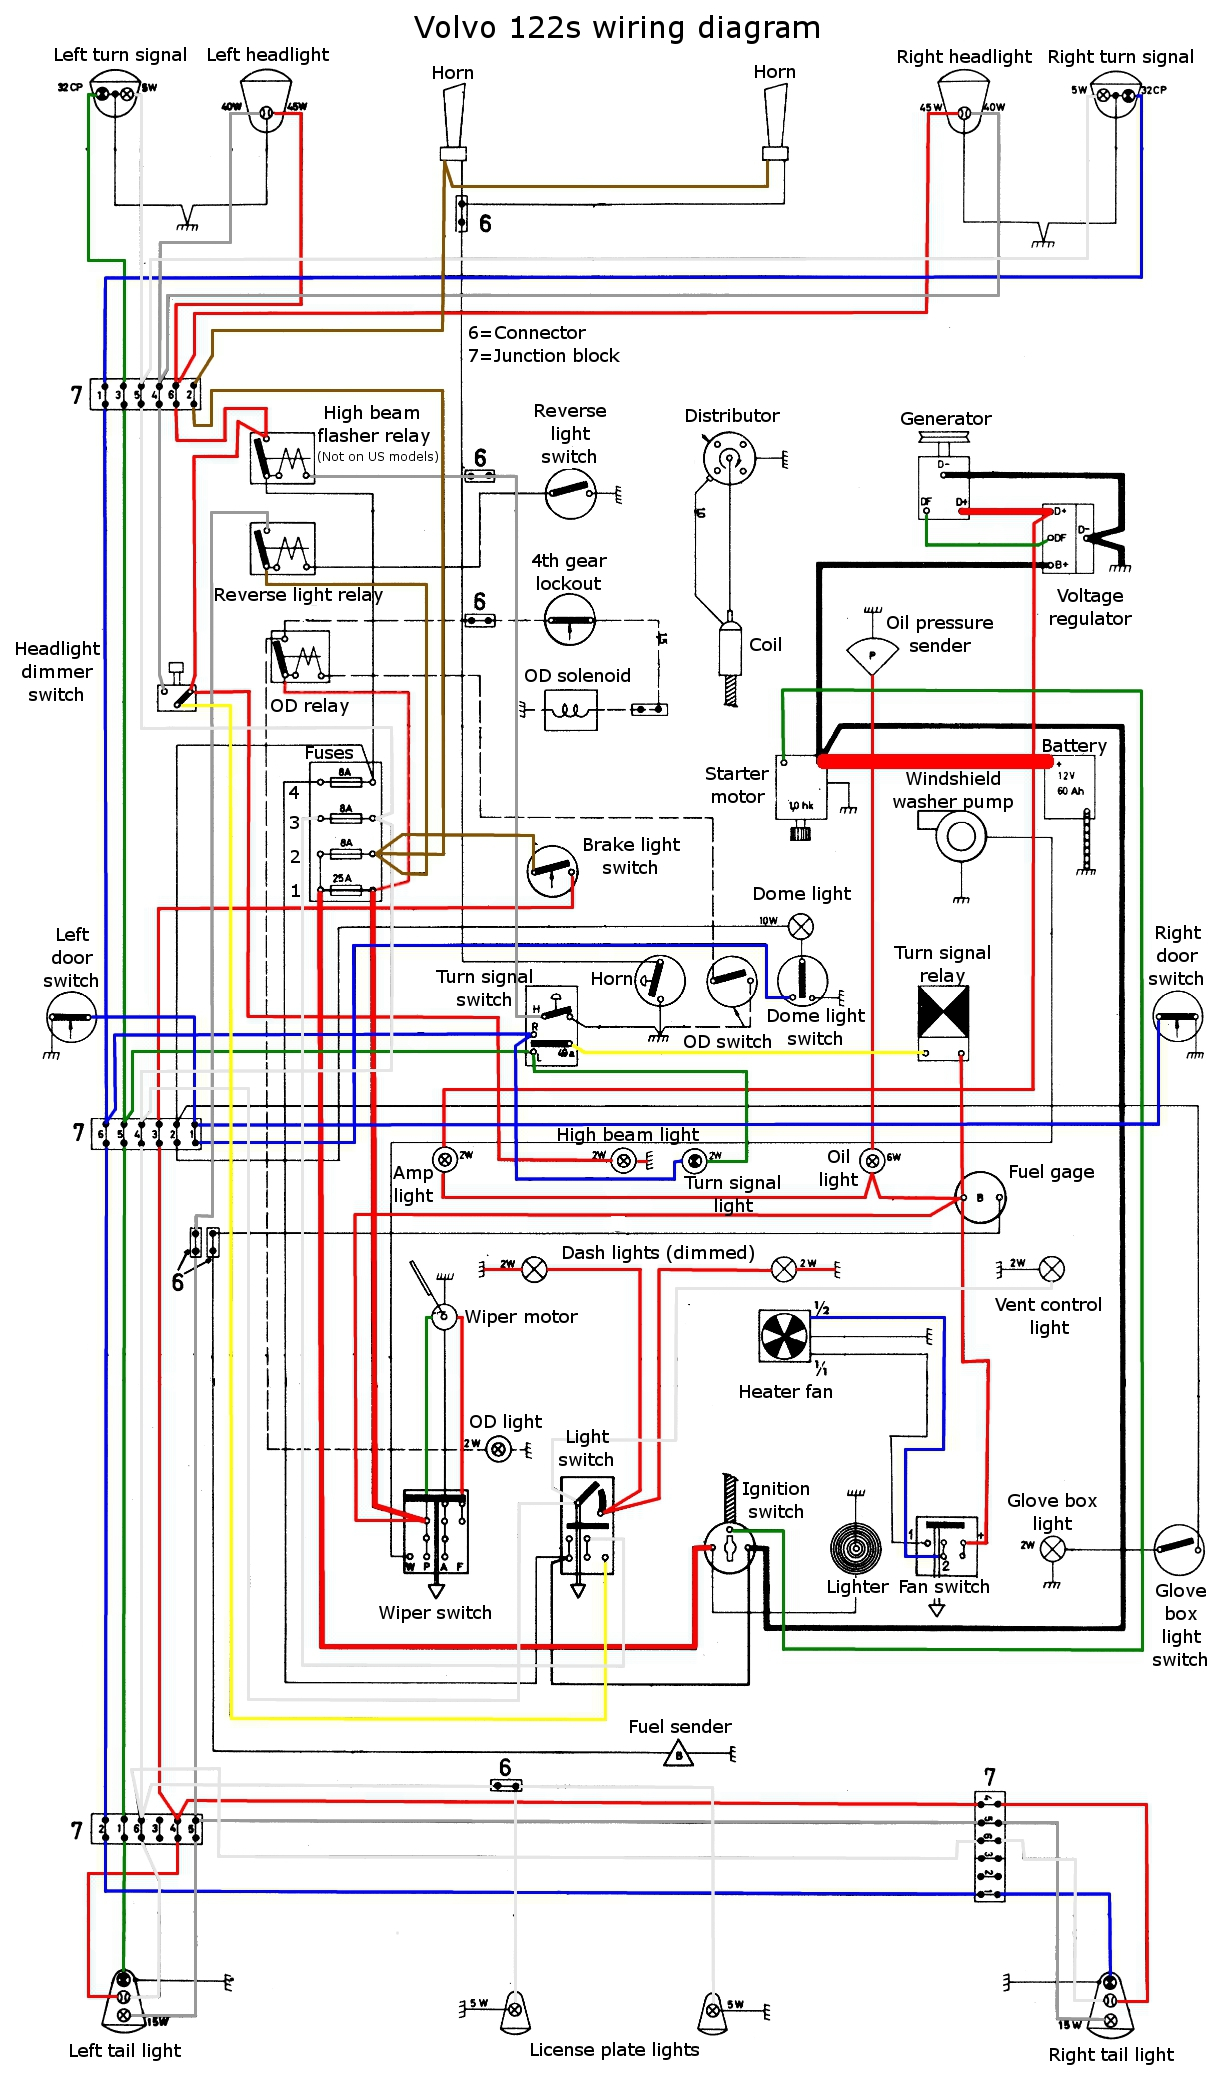 Wiring Diagram For Light Box : C headlight wiring diagram get free image about